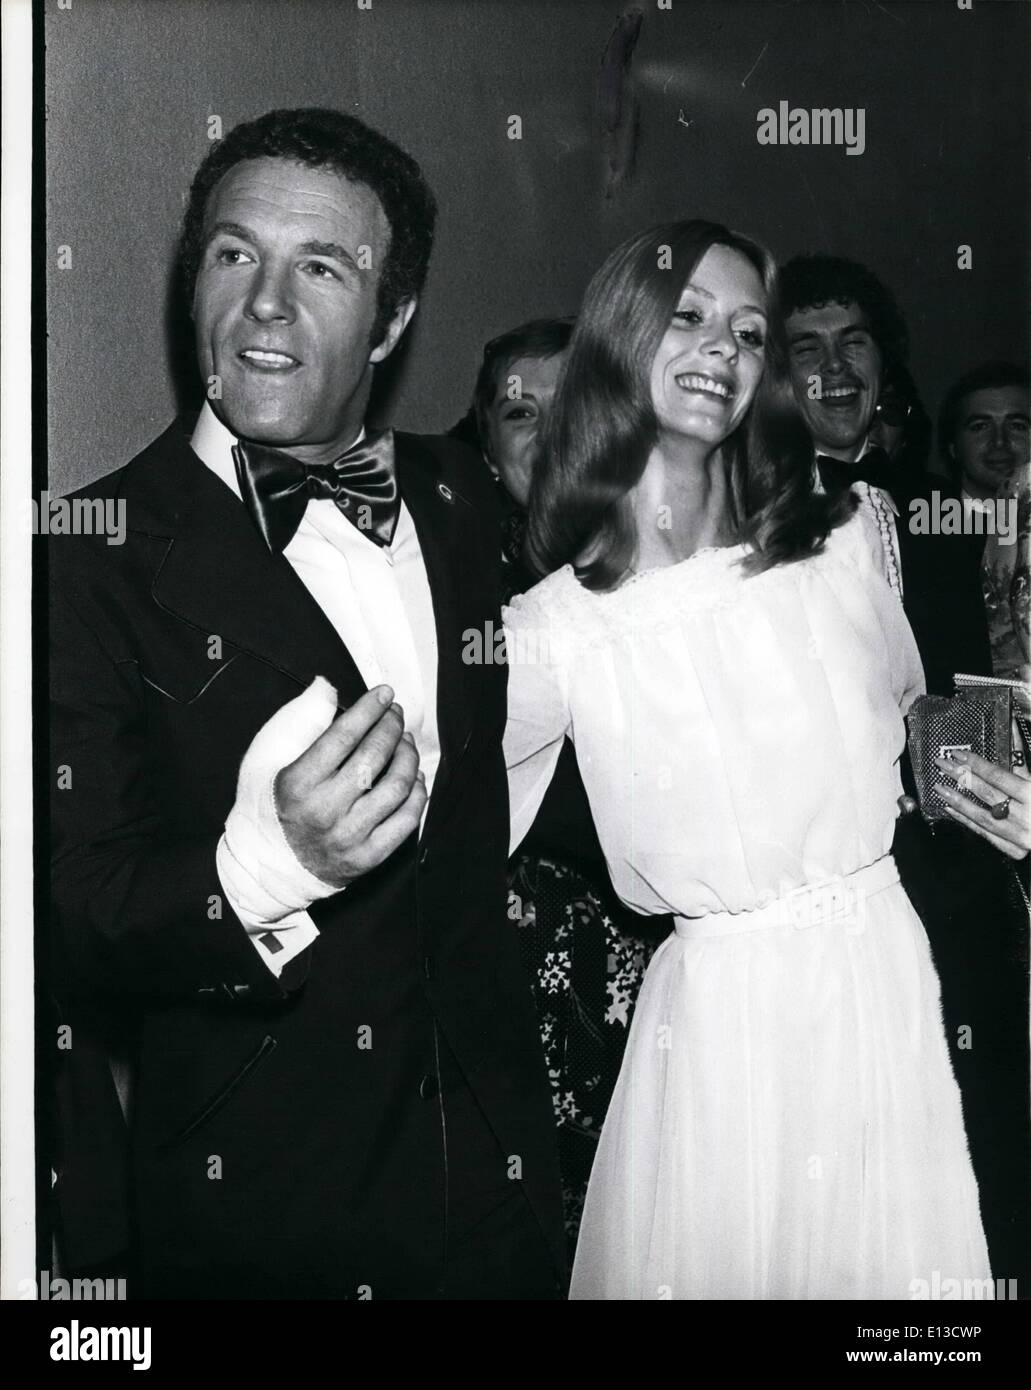 Feb. 29, 2012 - Premiere Of Funny Lady-starring James Caan and Barbara Streisand-opens in Washington, D.C. Sunday March 9: James Caan with girl friend Connie Kreskie seen at opening of his latest film in which he and Steisand appear together for the first time. - Stock Image